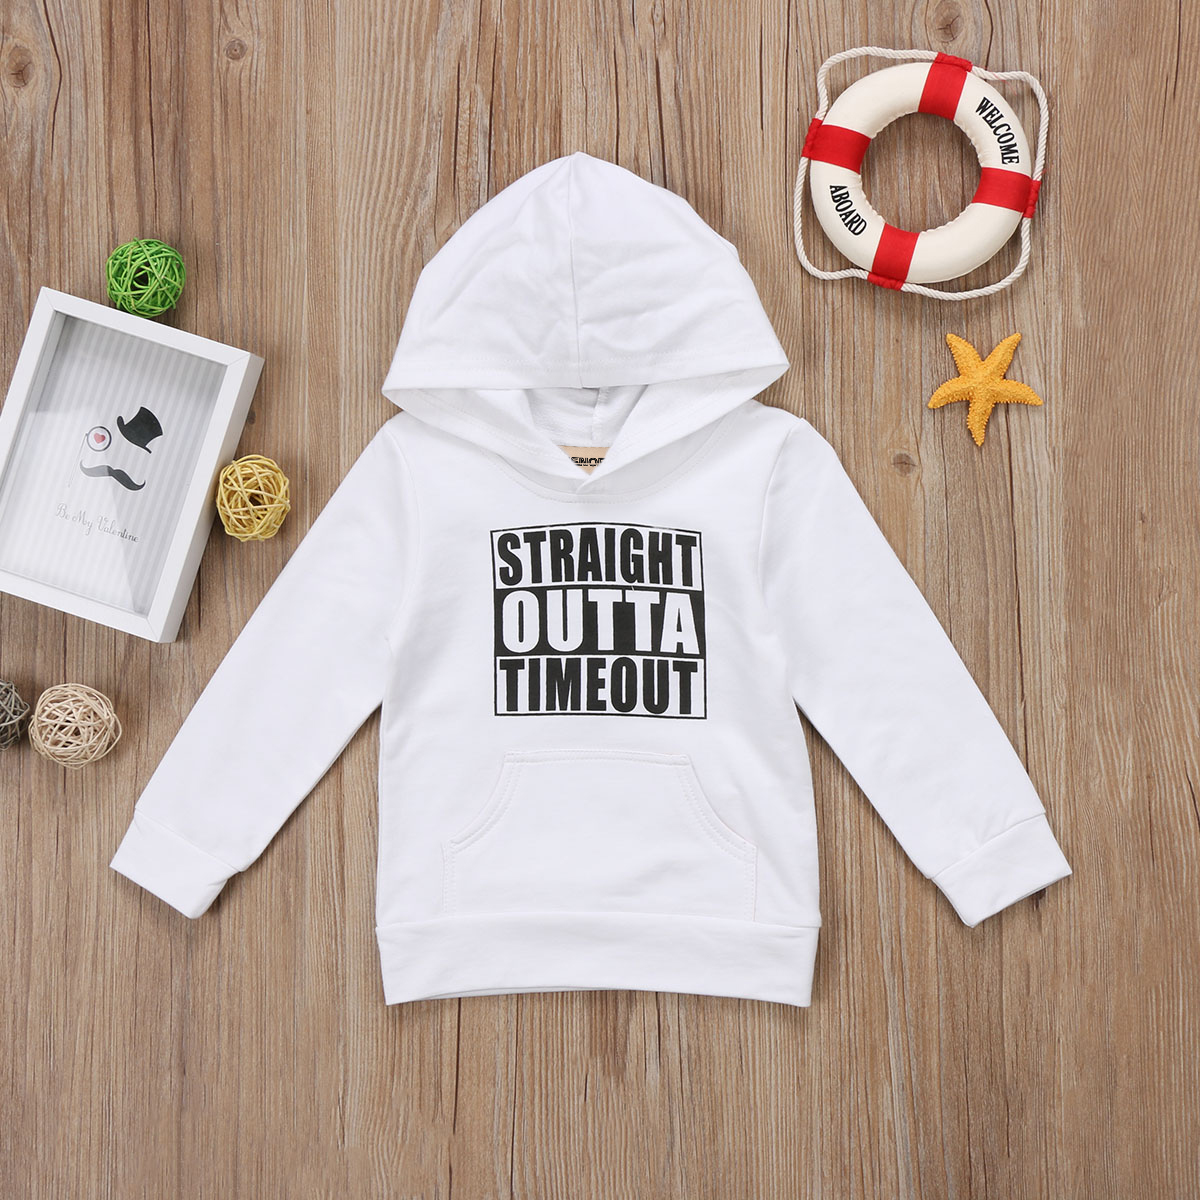 Casual Autumn Winter Hoodie Tops Hooded Sweatshirt Toddler Newborn Baby Boy Girl Outdoor 0-5Y